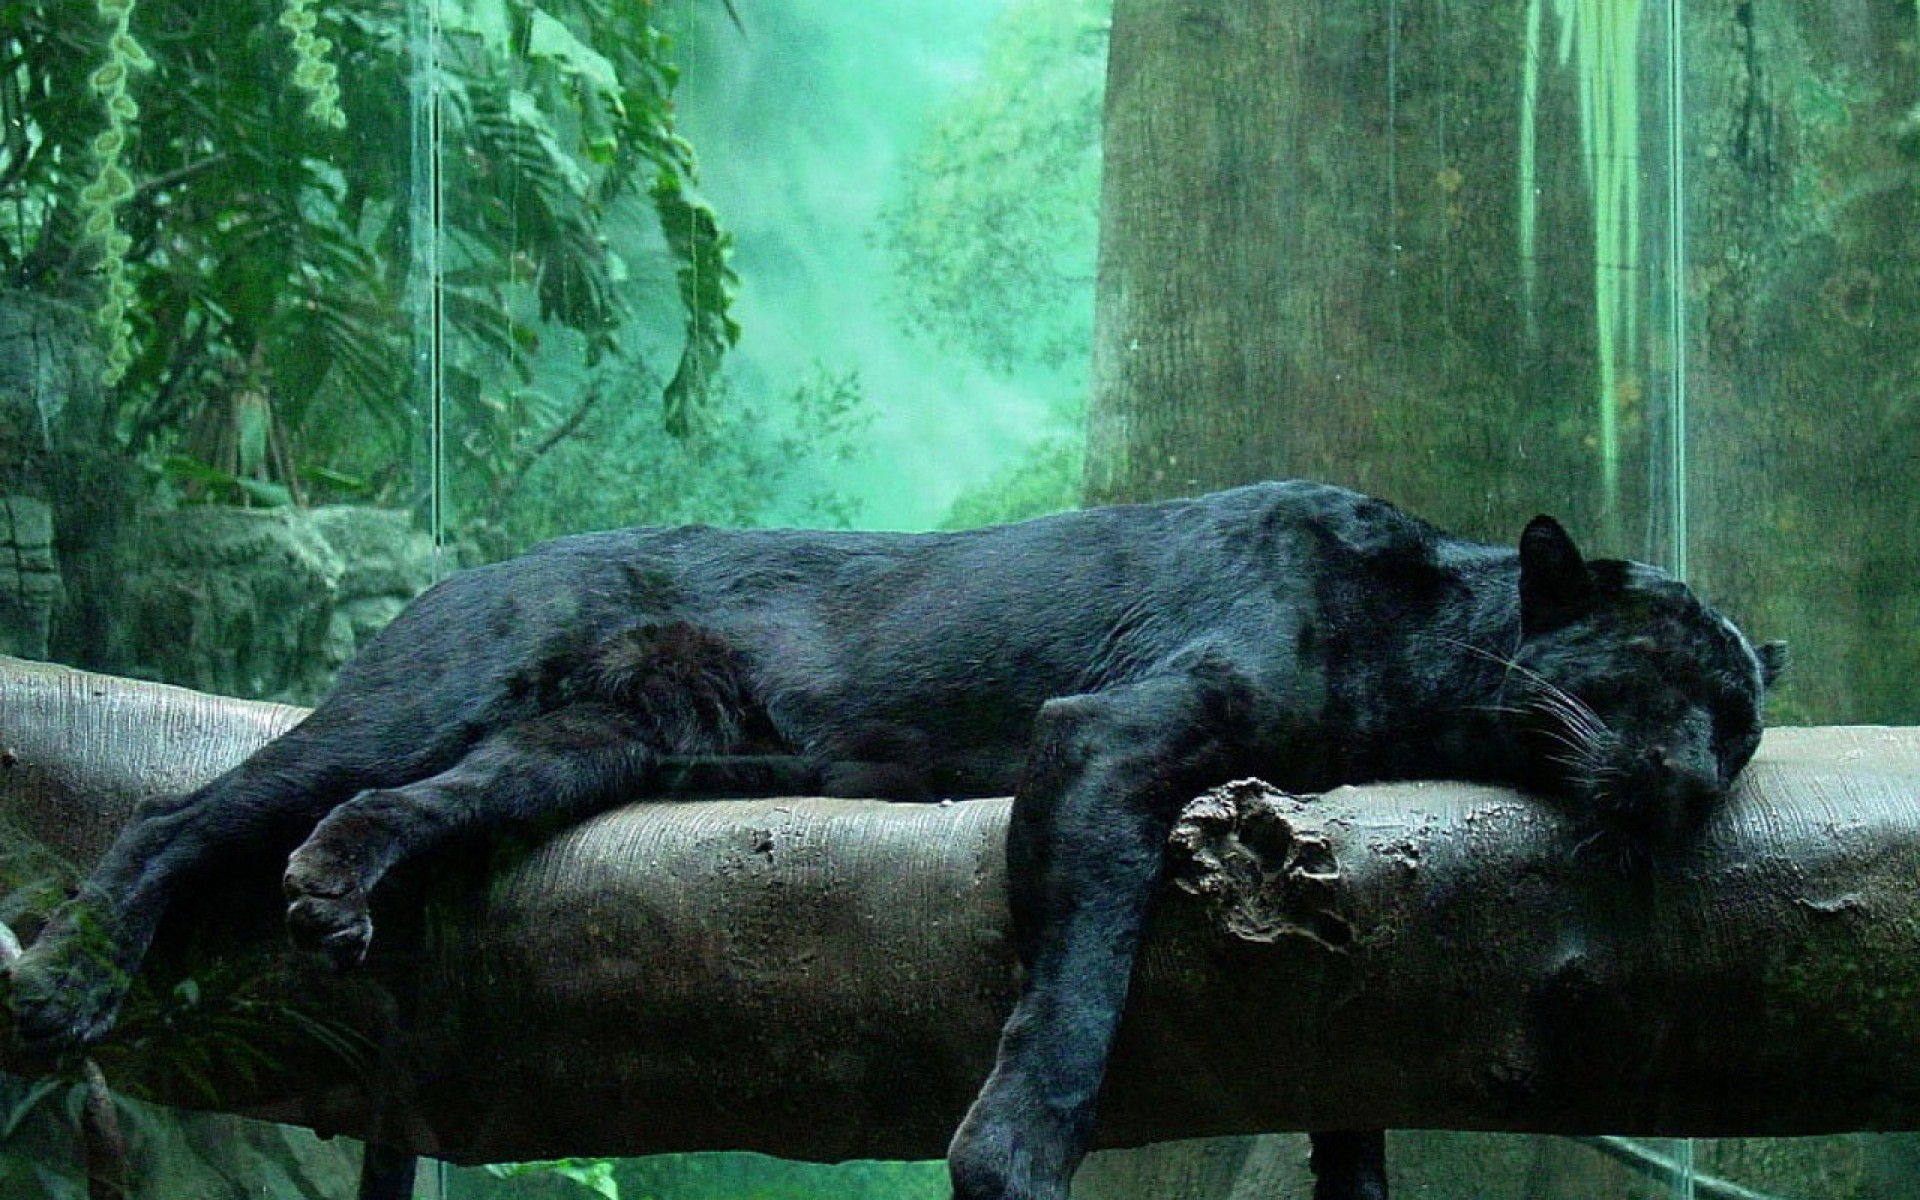 Panther Wallpapers APK for iPhone  Download Android APK GAMES 1920x1200